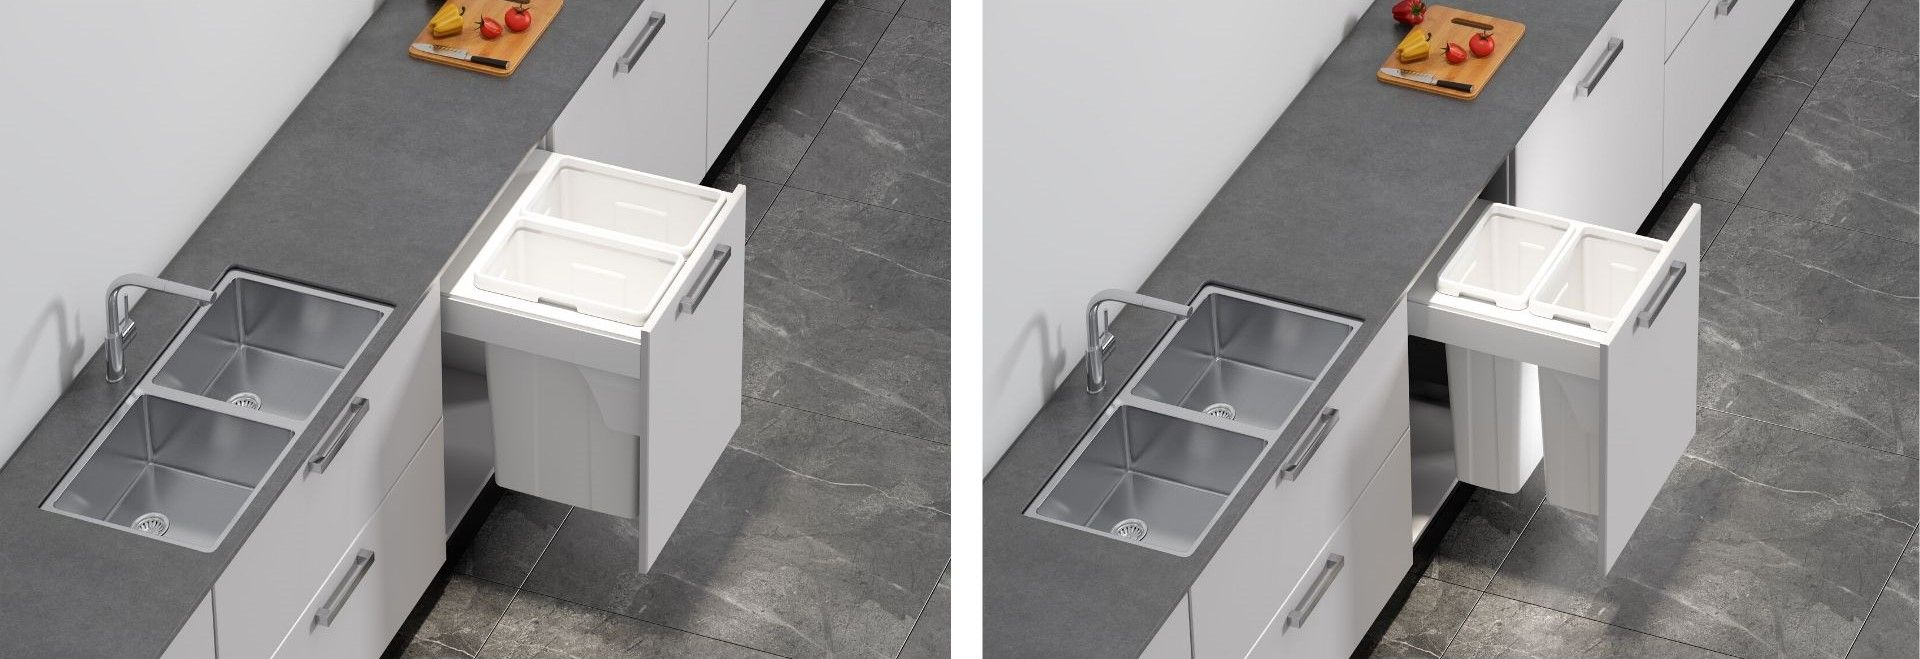 new waste bins and laundry hampers kaboodle kitchen in 2020 laundry in bathroom laundry on kaboodle kitchen storage id=30811